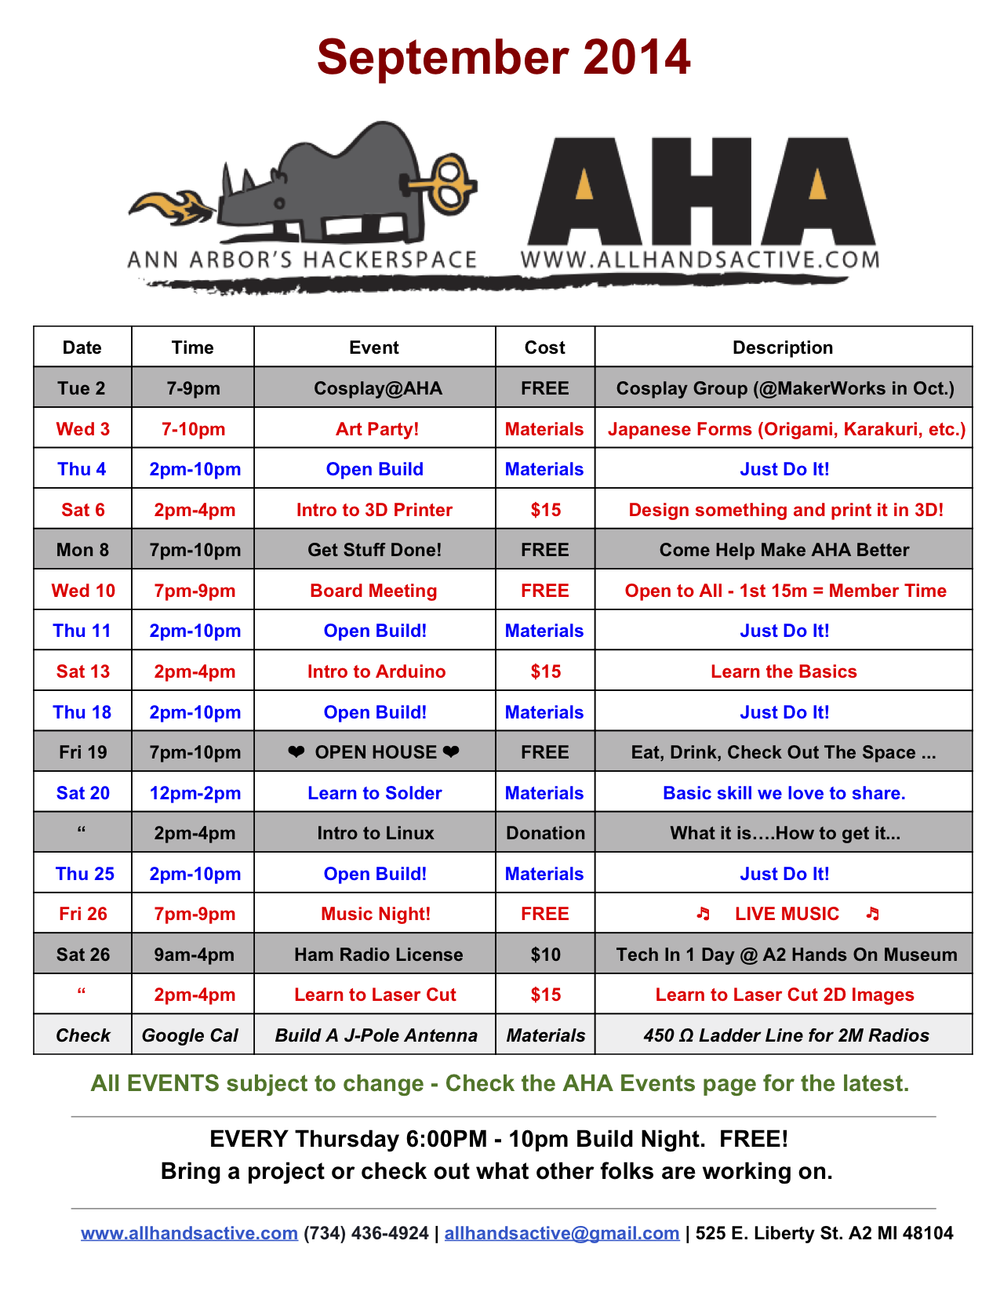 September 2014 schedule for  All Hands Active , a not-for-profit hacker space at 525 E Liberty St in Ann Arbor next to the Michigan Theater.